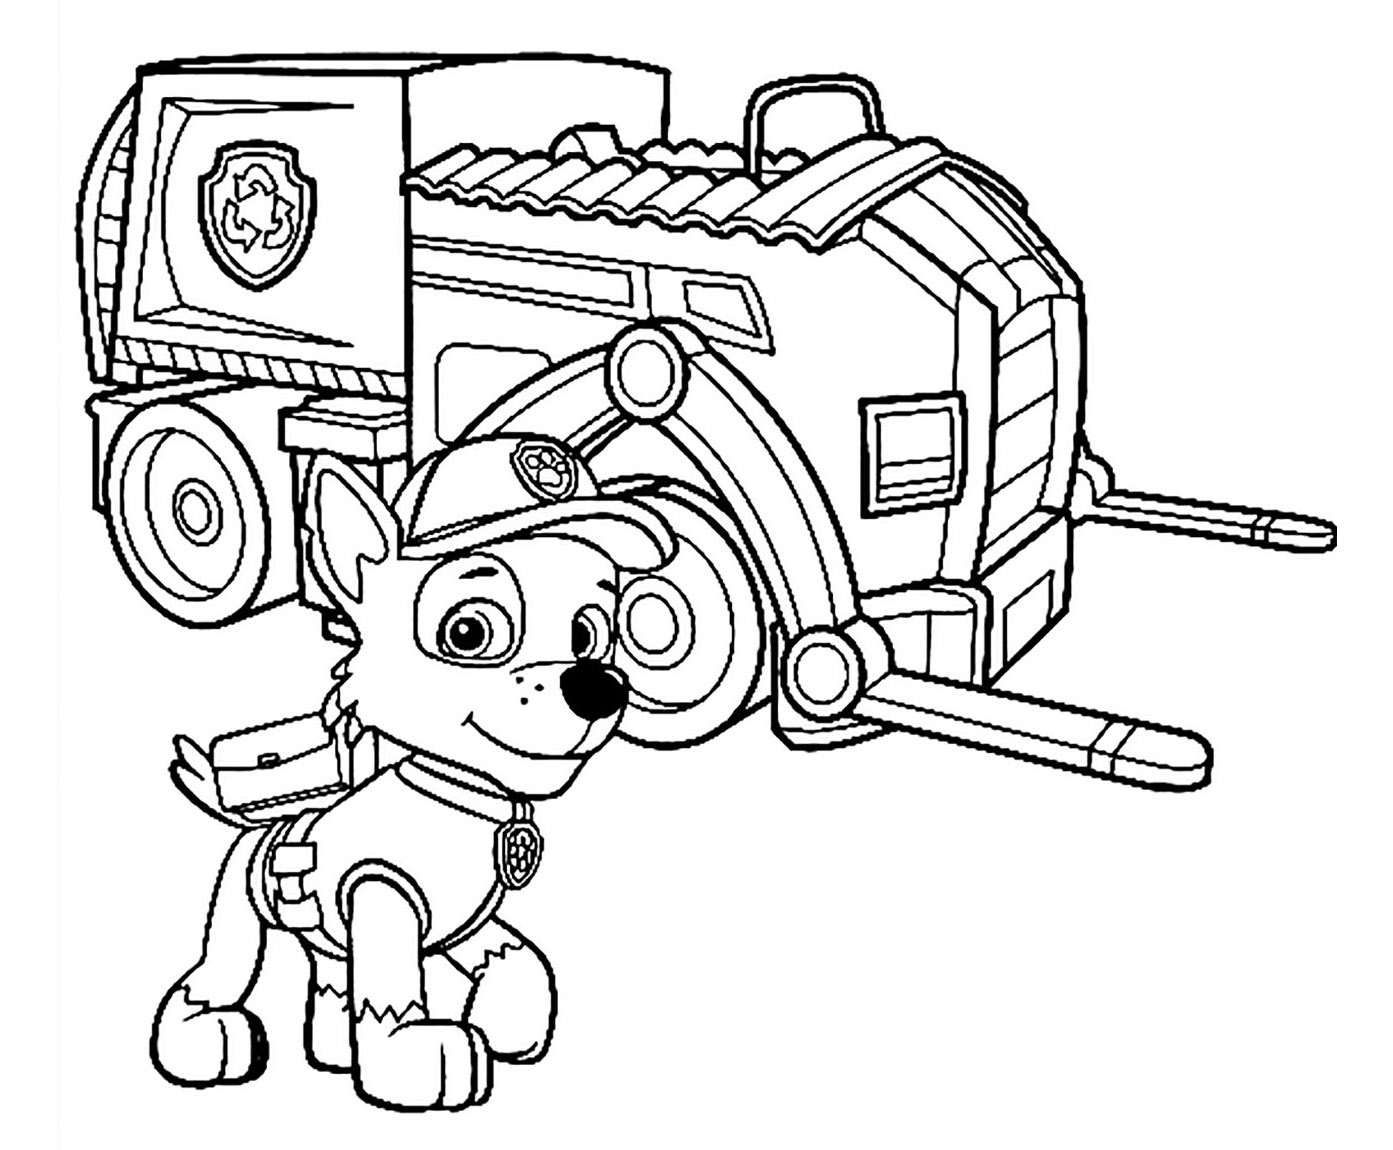 Paw Patrol Vehicles Coloring Pages At Getdrawings Free Download